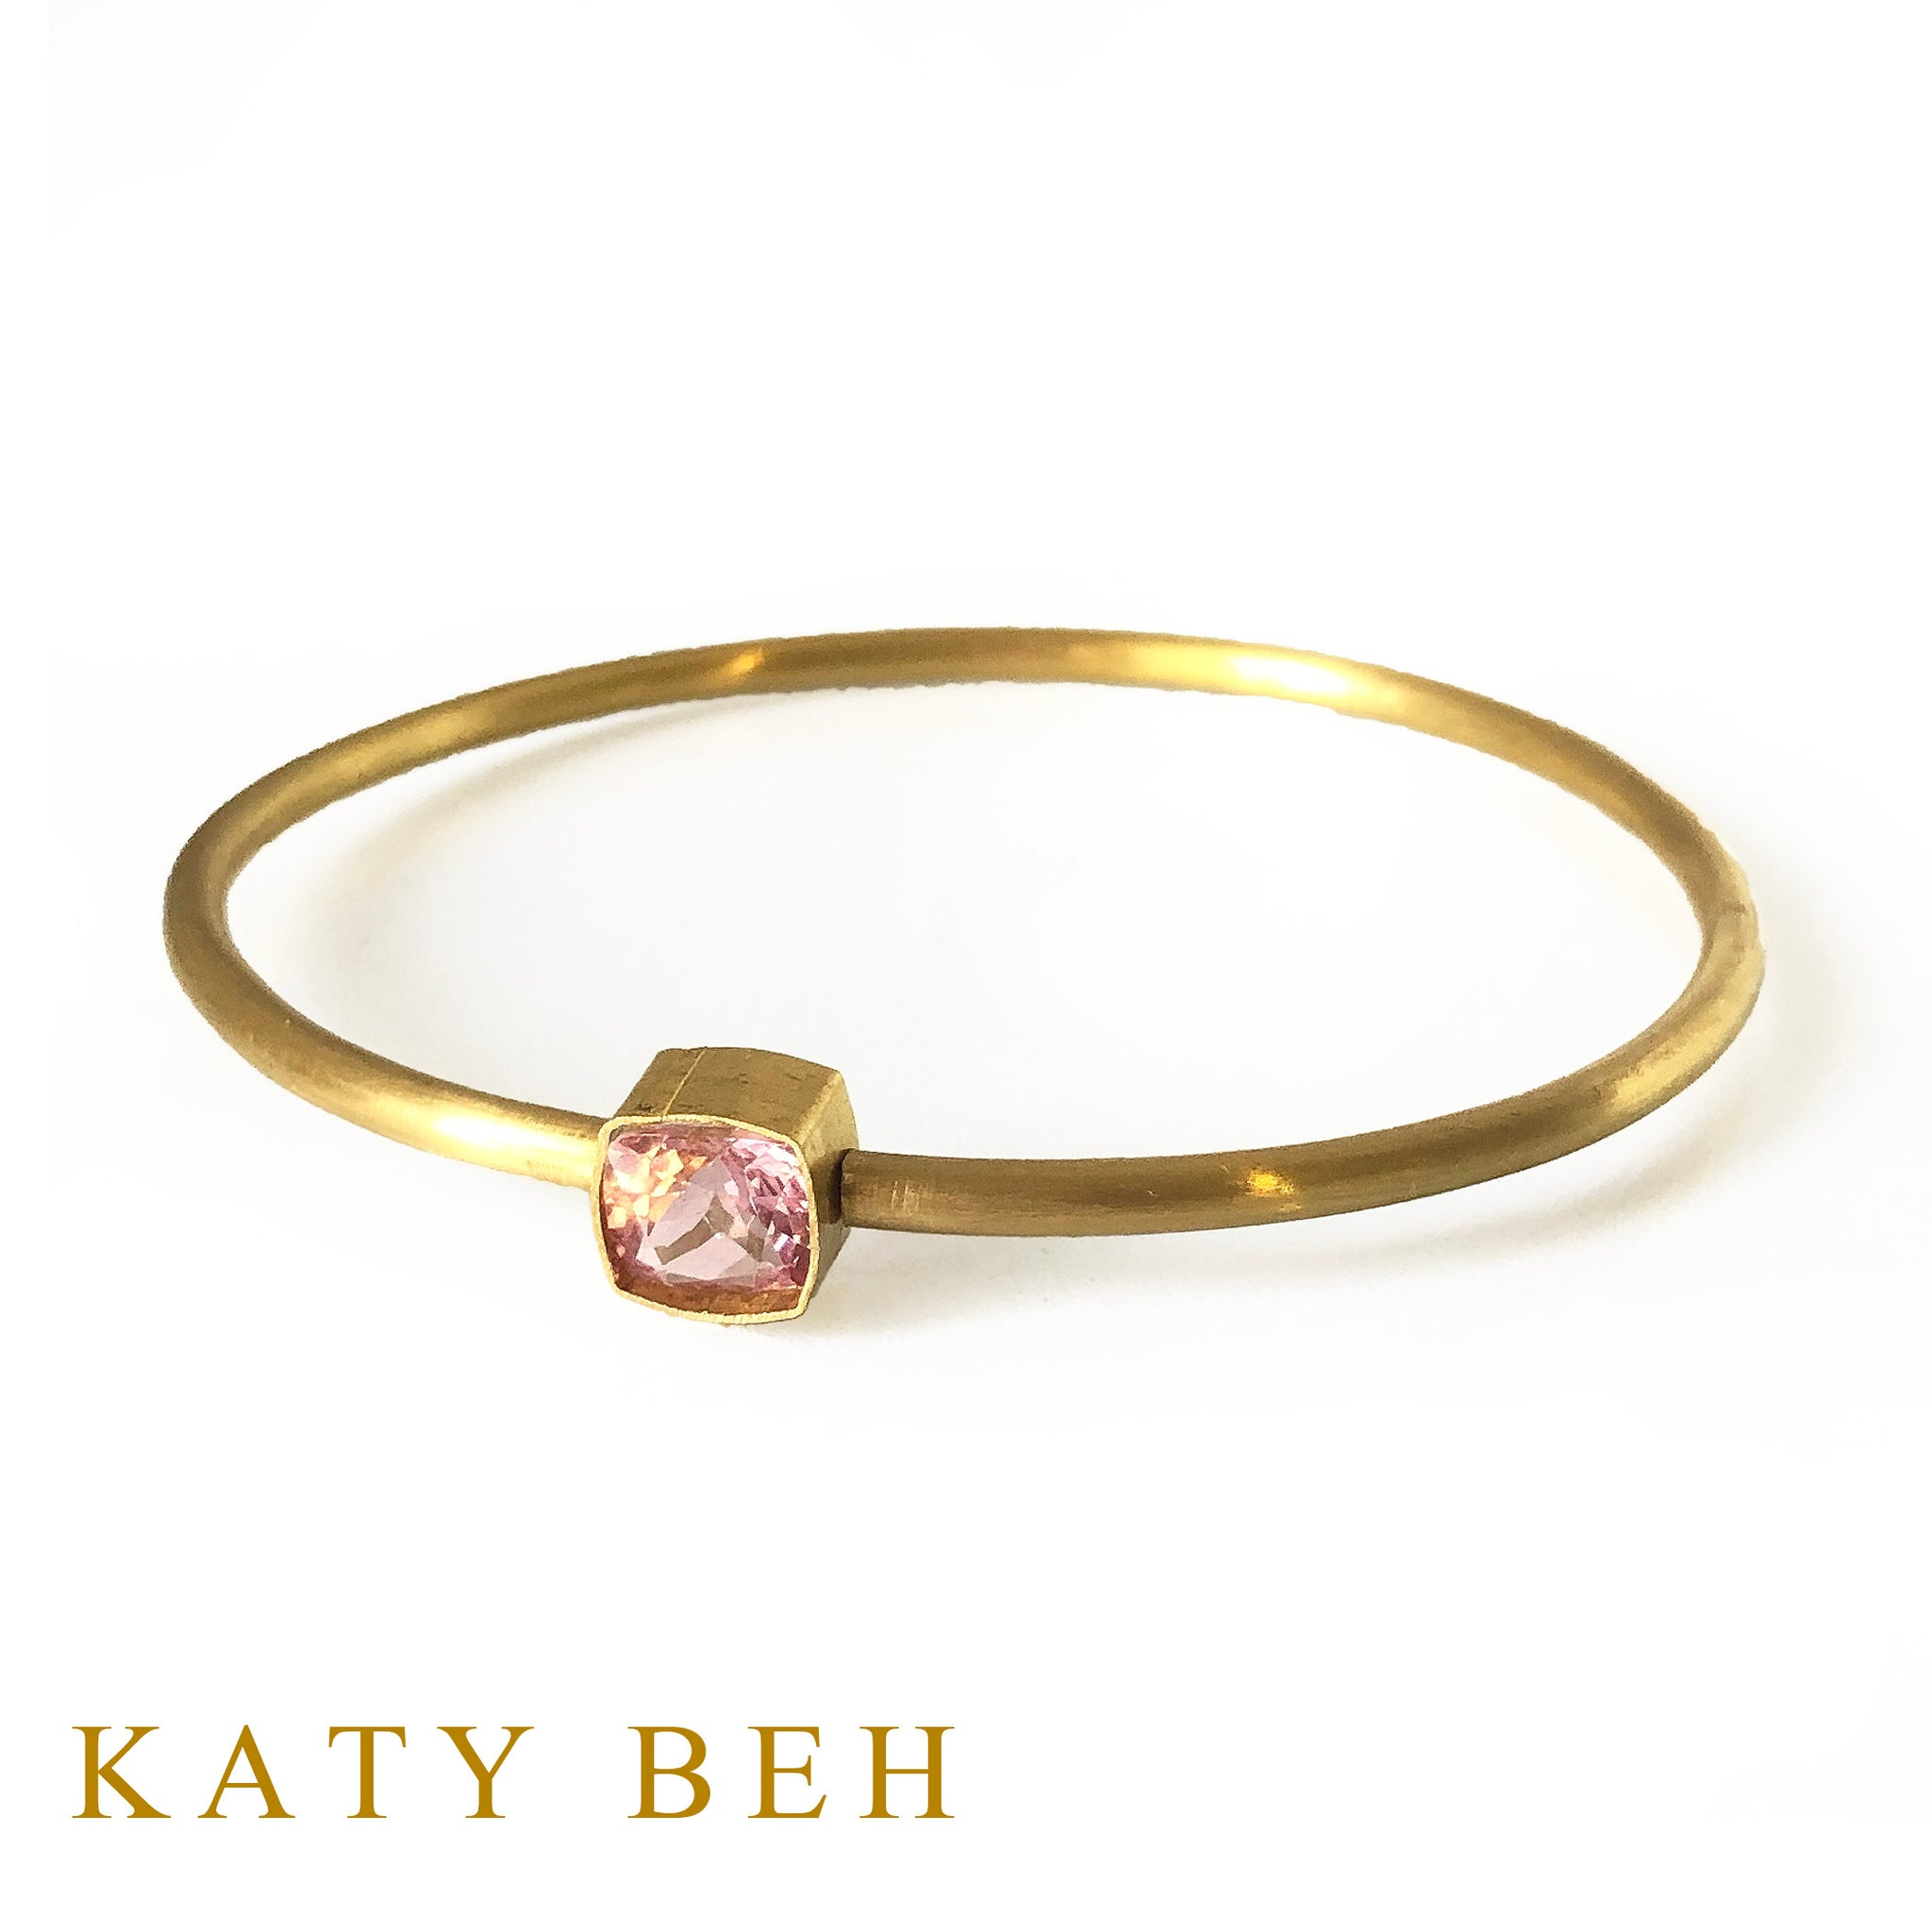 Ada 22k Gold and Pink Tourmaline Round Bangle Bracelet